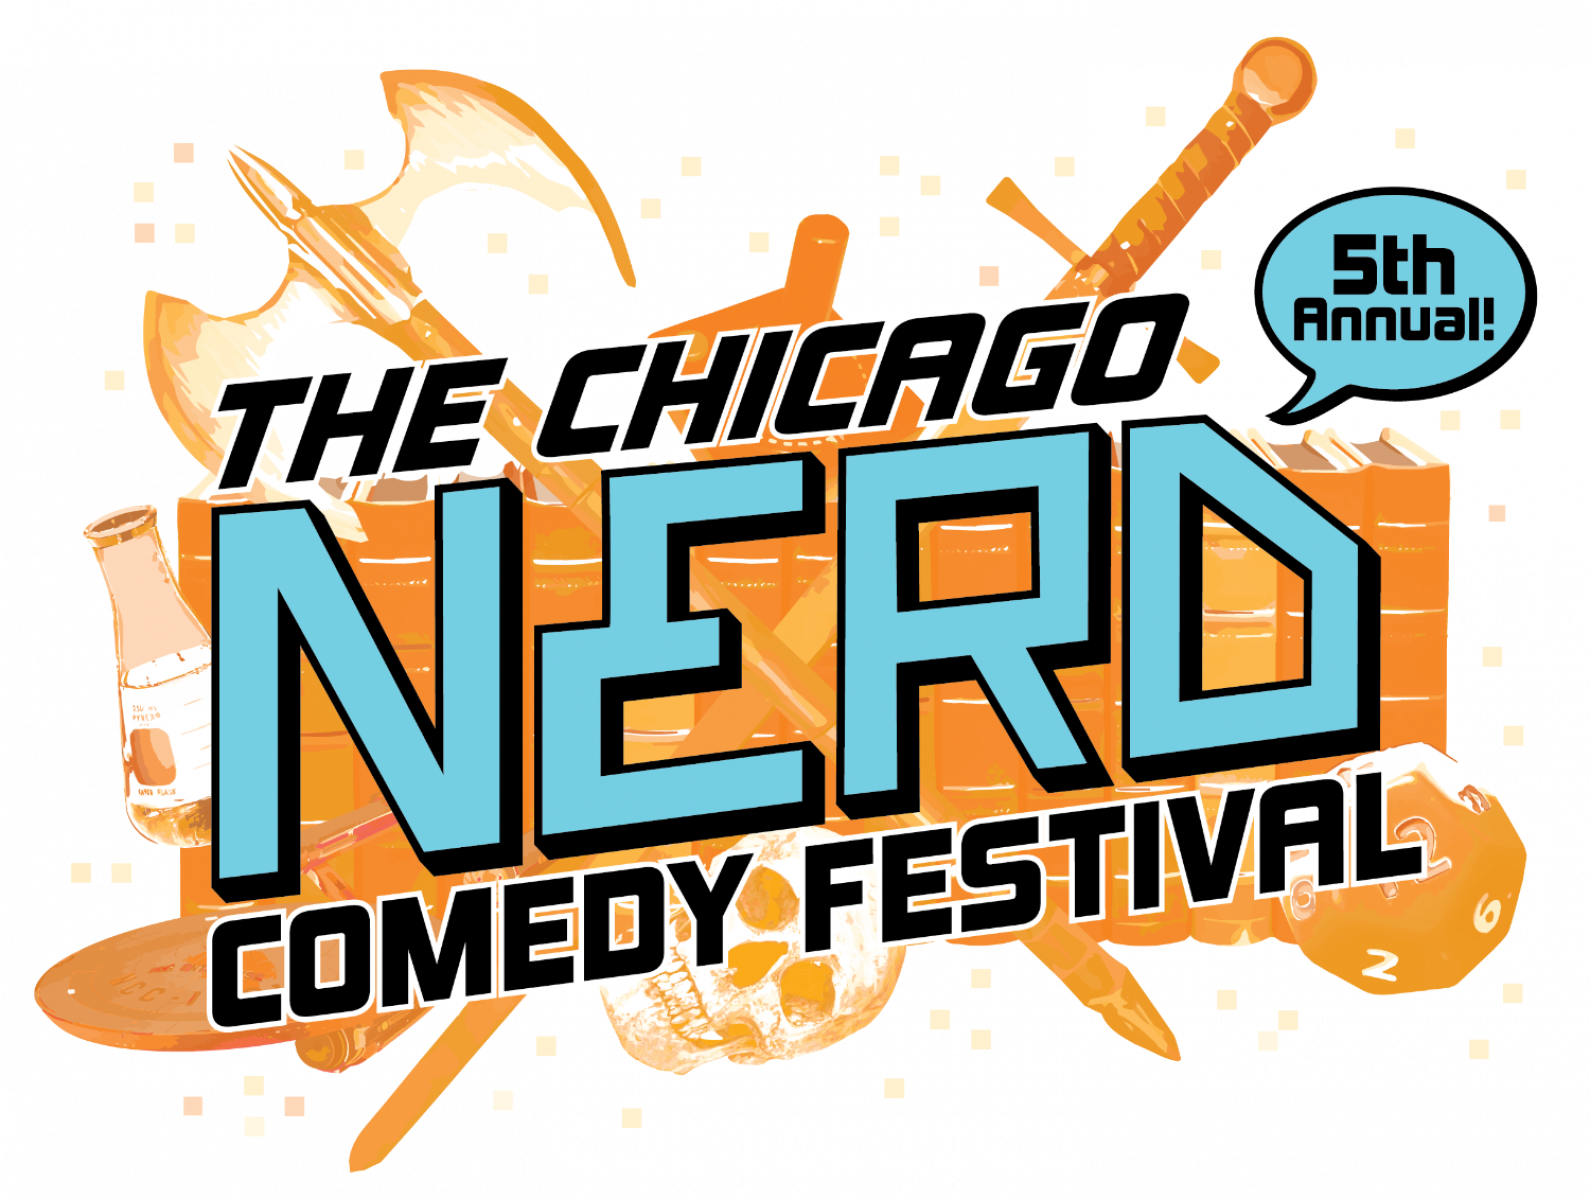 Get Your Geek on with The Fifth Annual Chicago Nerd Comedy Festival, Back by Popular Demand